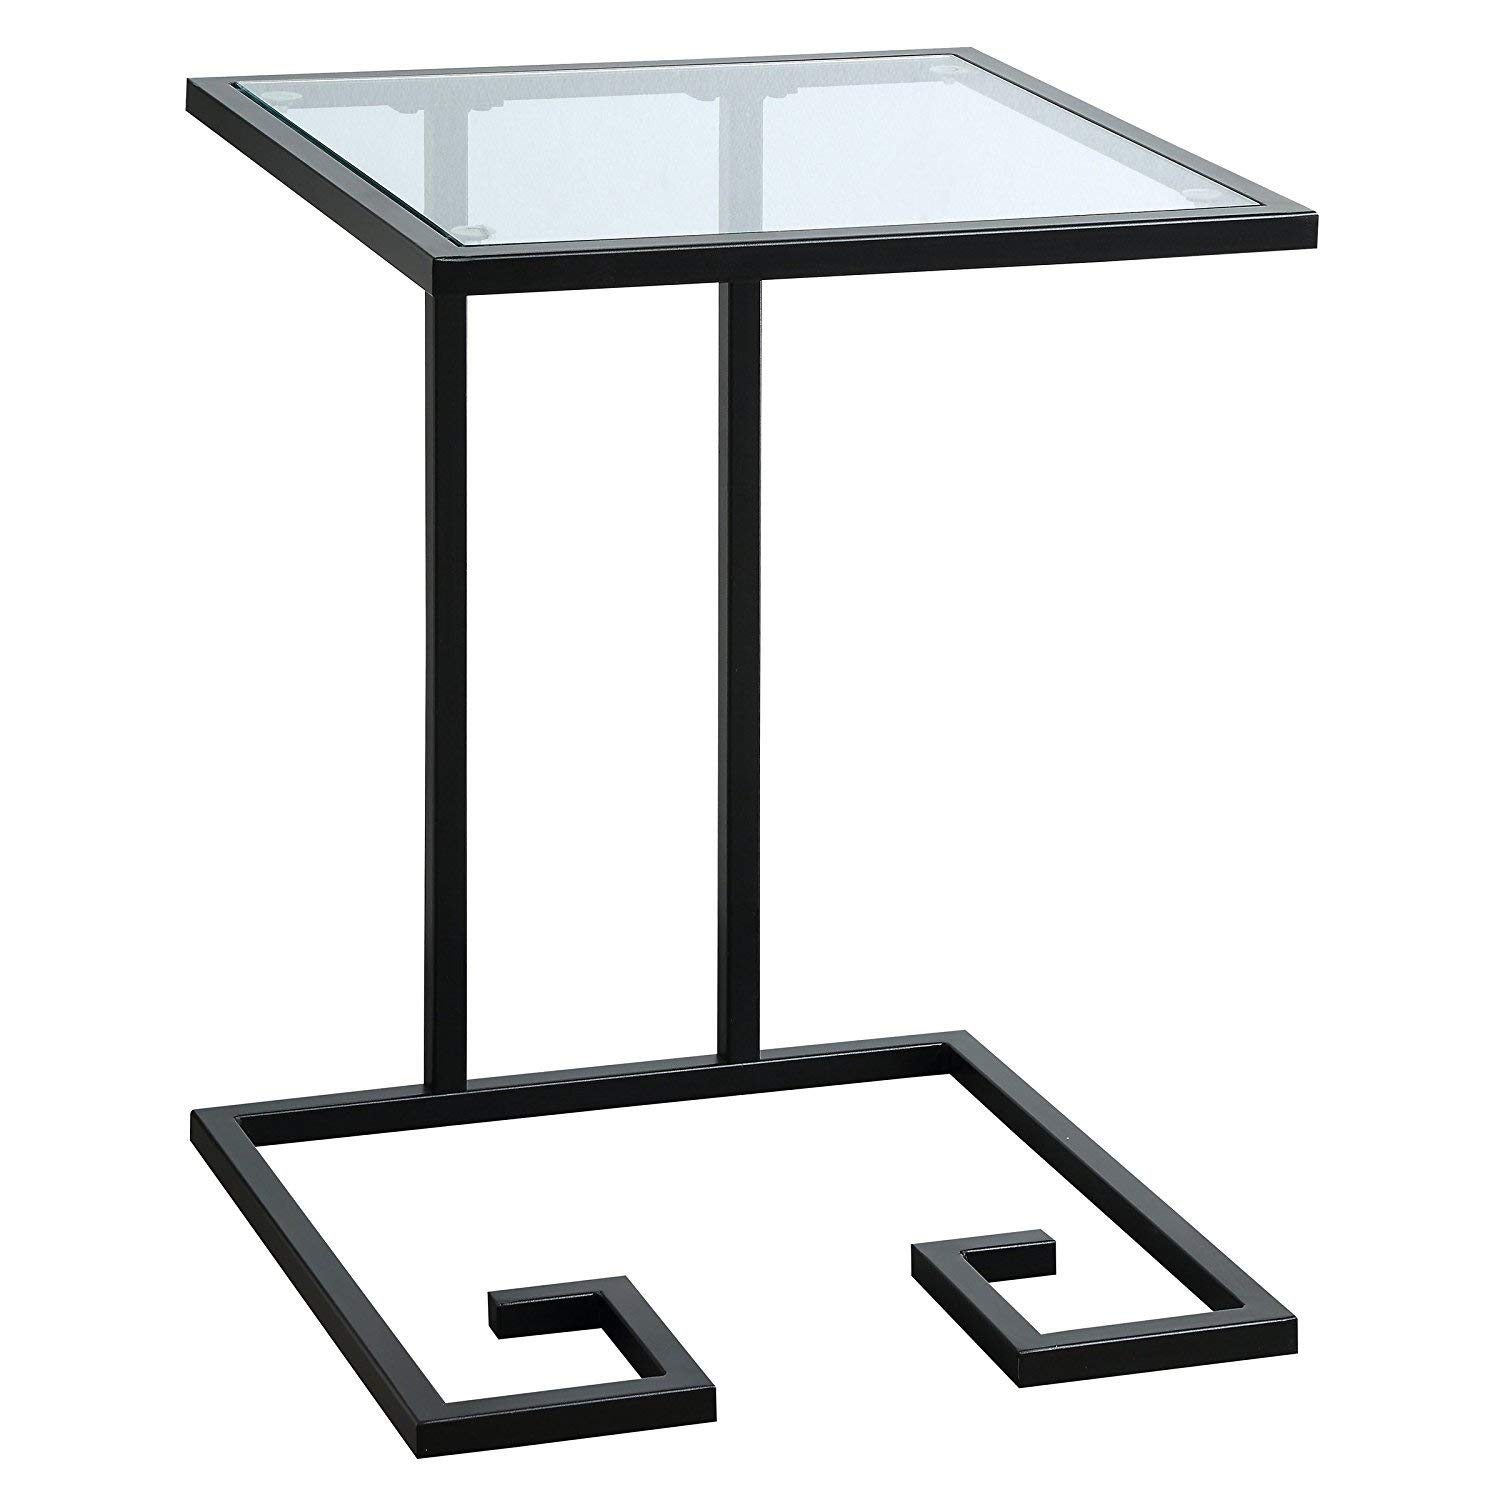 Indoor Multi-Function Accent Table Study Computer Home Office Desk Bedroom Living Room Modern Style End Table Sofa Side Table Coffee Table Black accent table